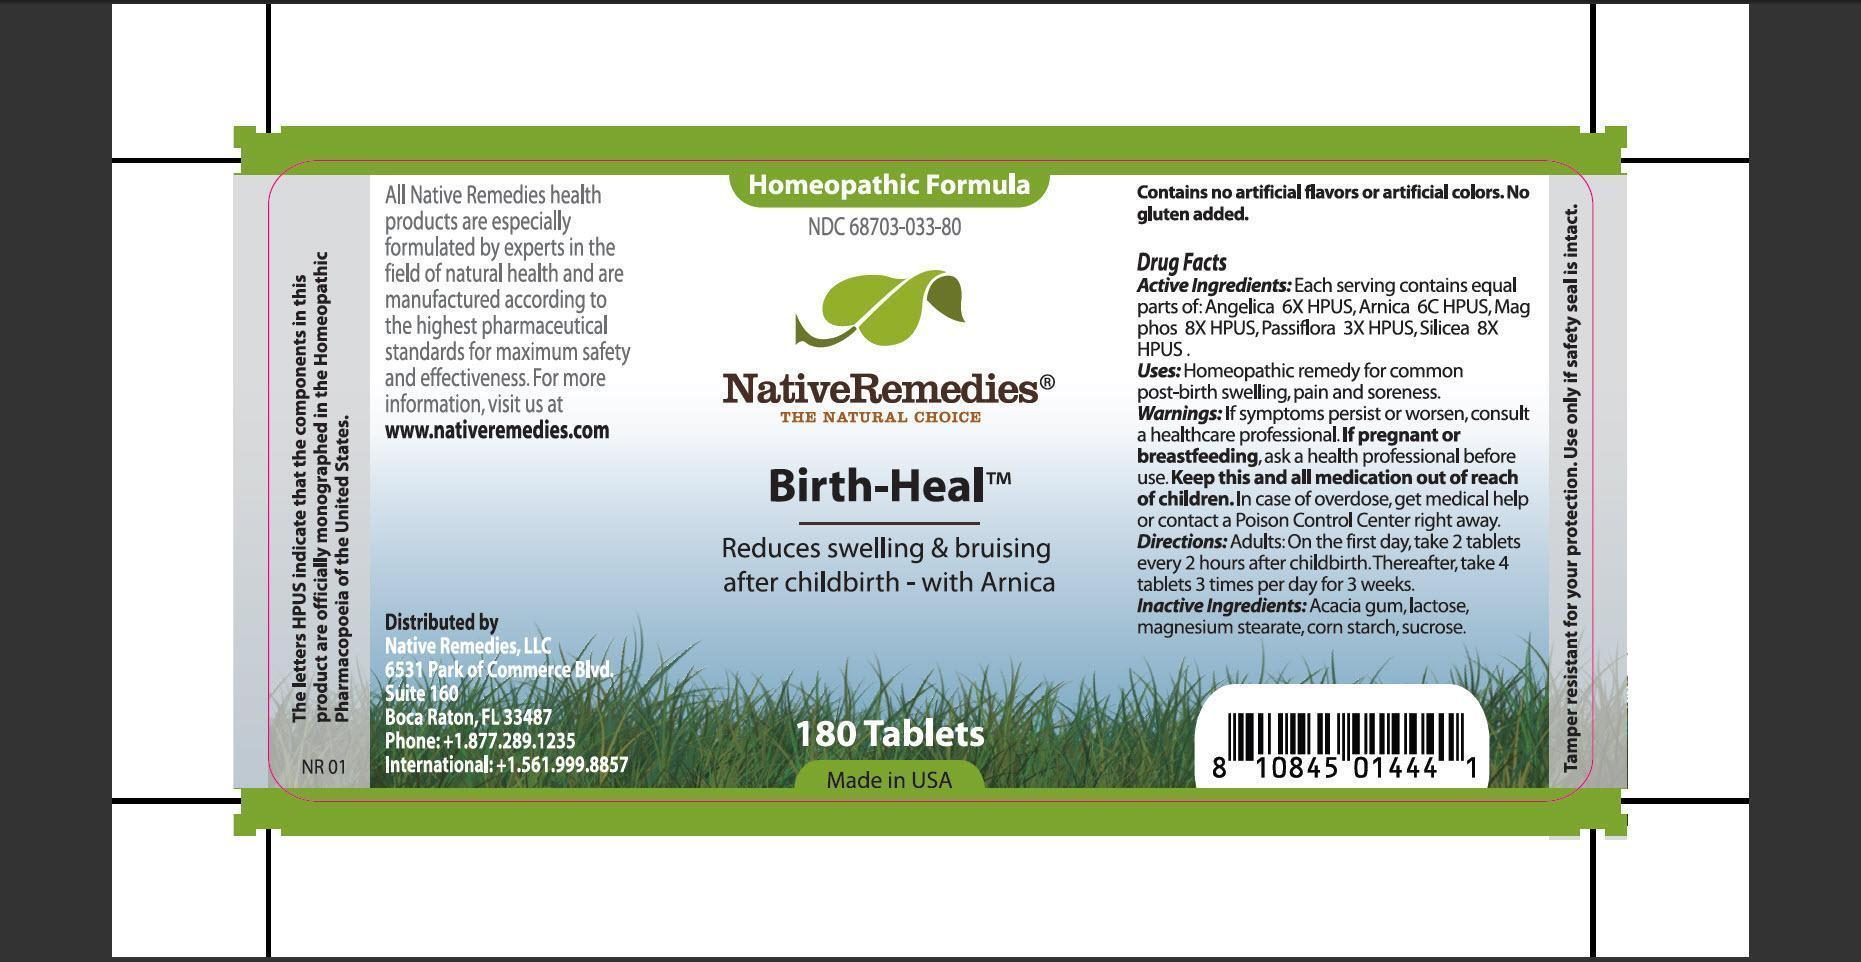 Birth-heal (Angelica, Arnica, Mag Phos, Passiflora, Silicea) Tablet [Native Remedies, Llc]